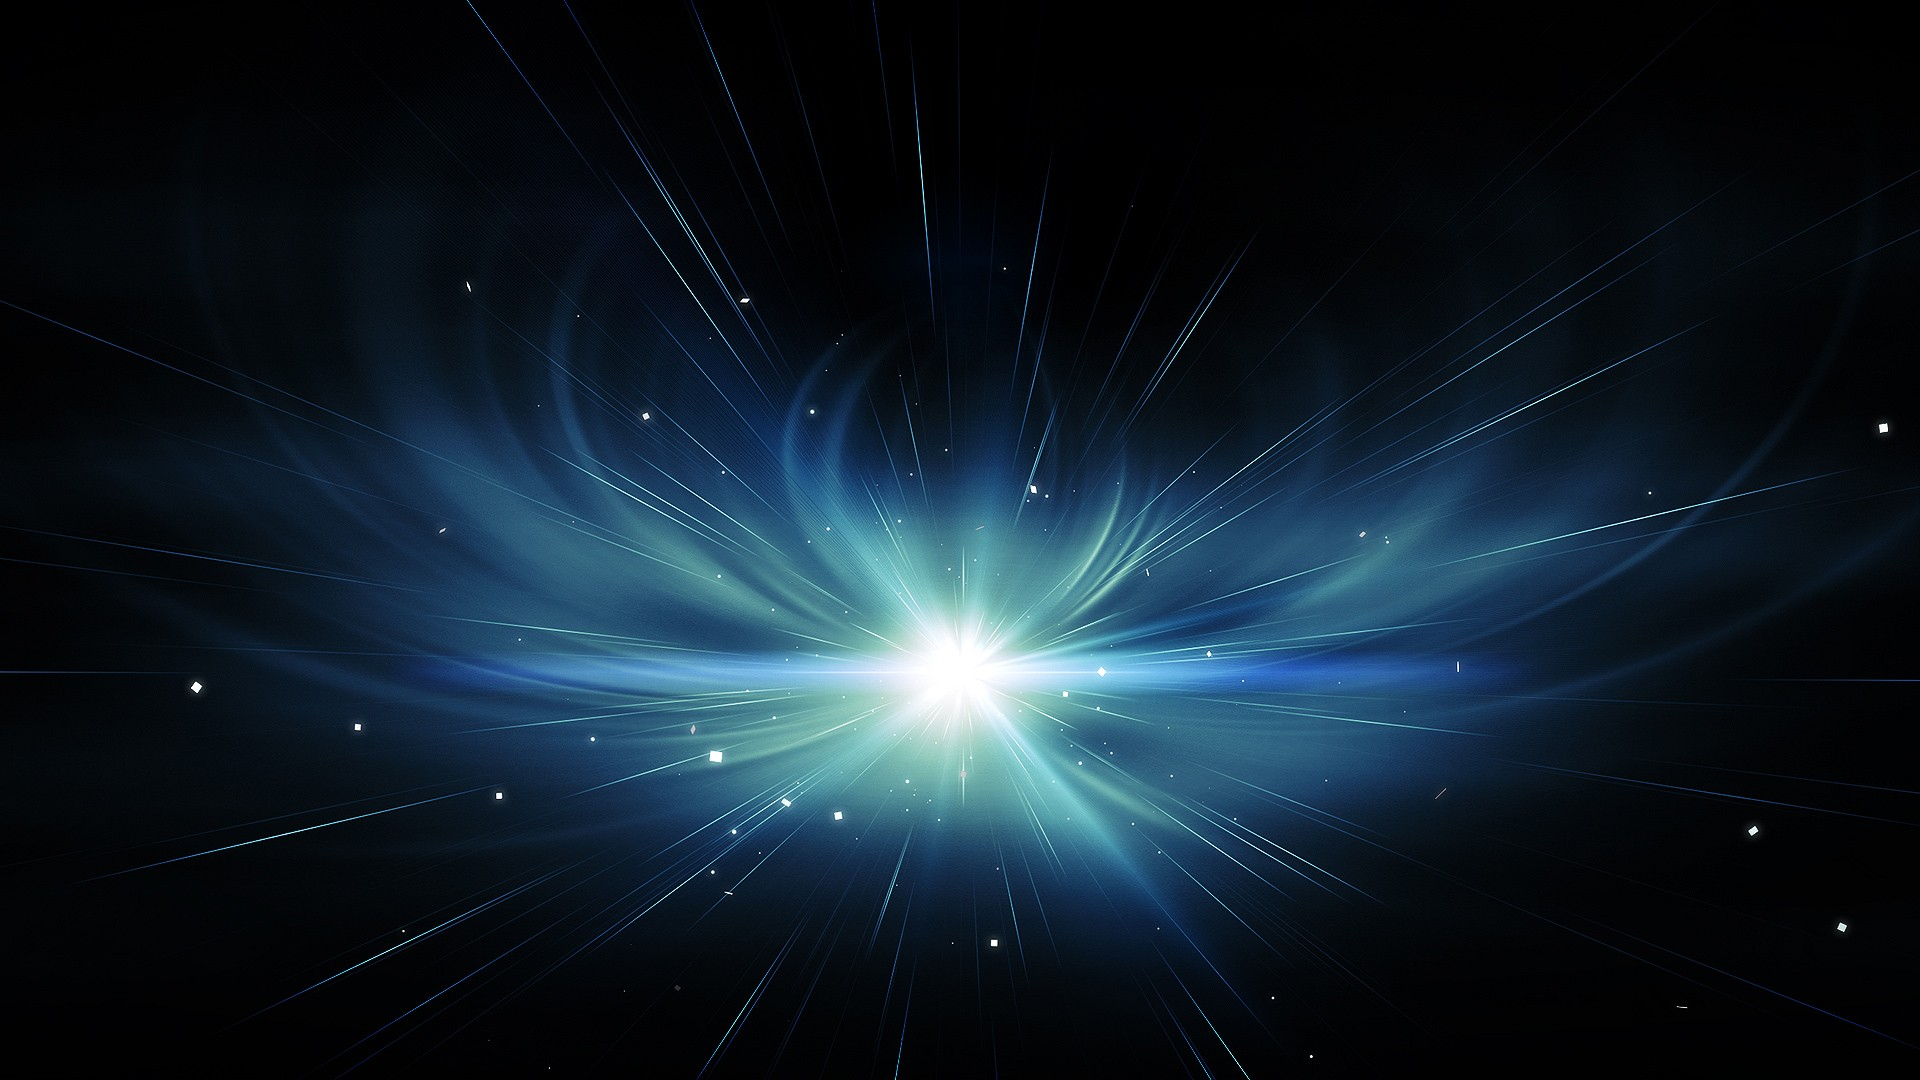 Wallpaper Abyss Abstract Background with Resolution